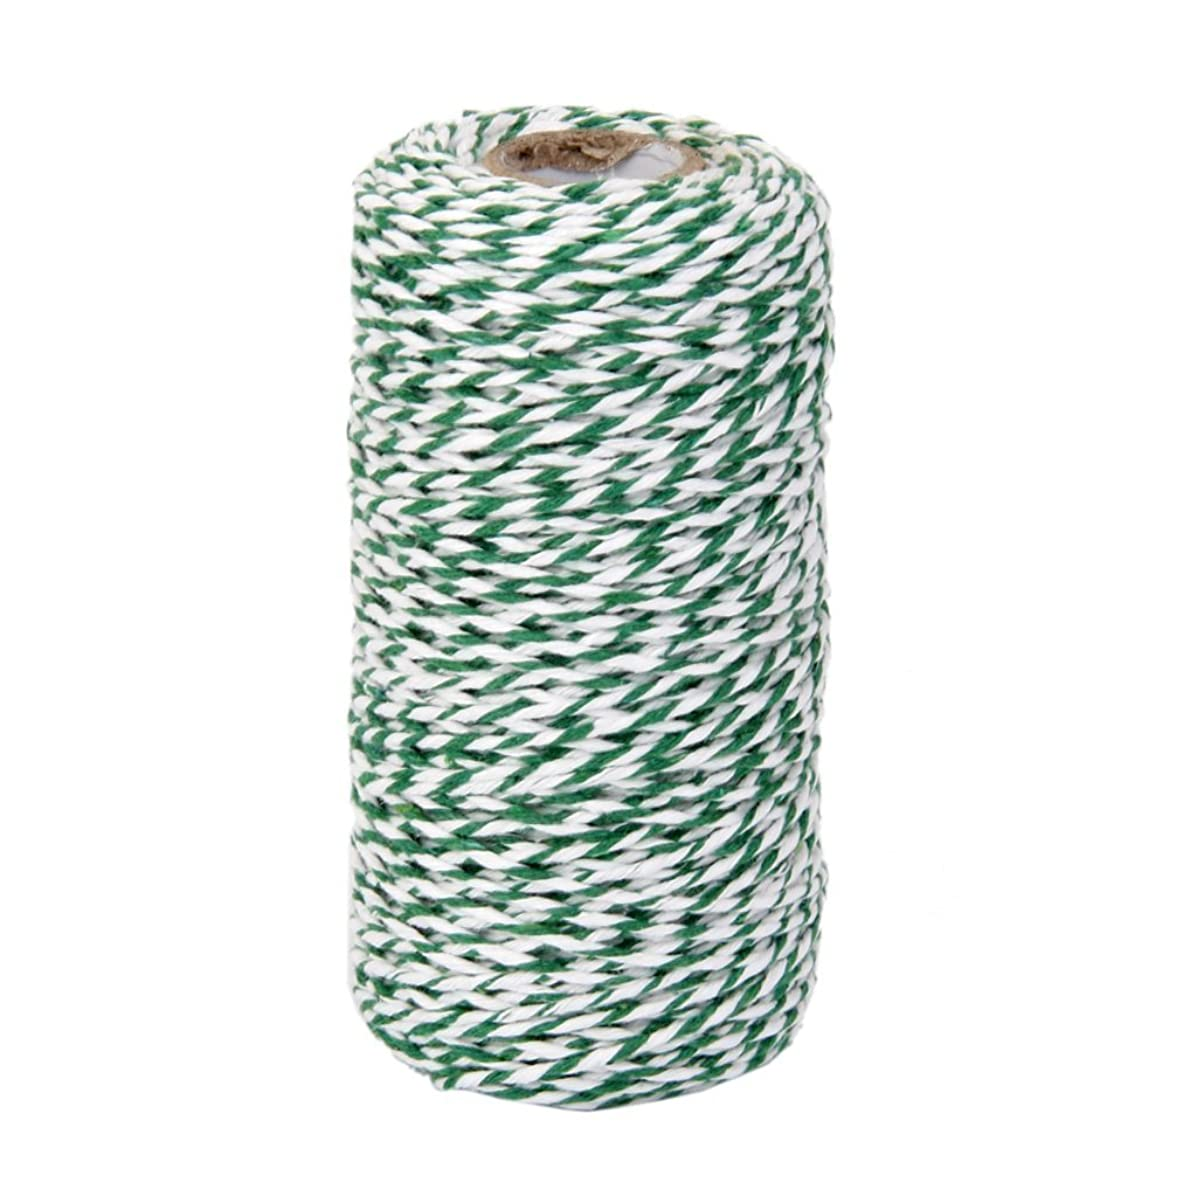 OxoxO 100YD White + Green Wrap Gift Cotton Rope Ribbon Twine Rope Bottle Gift Box Line Design 2MM